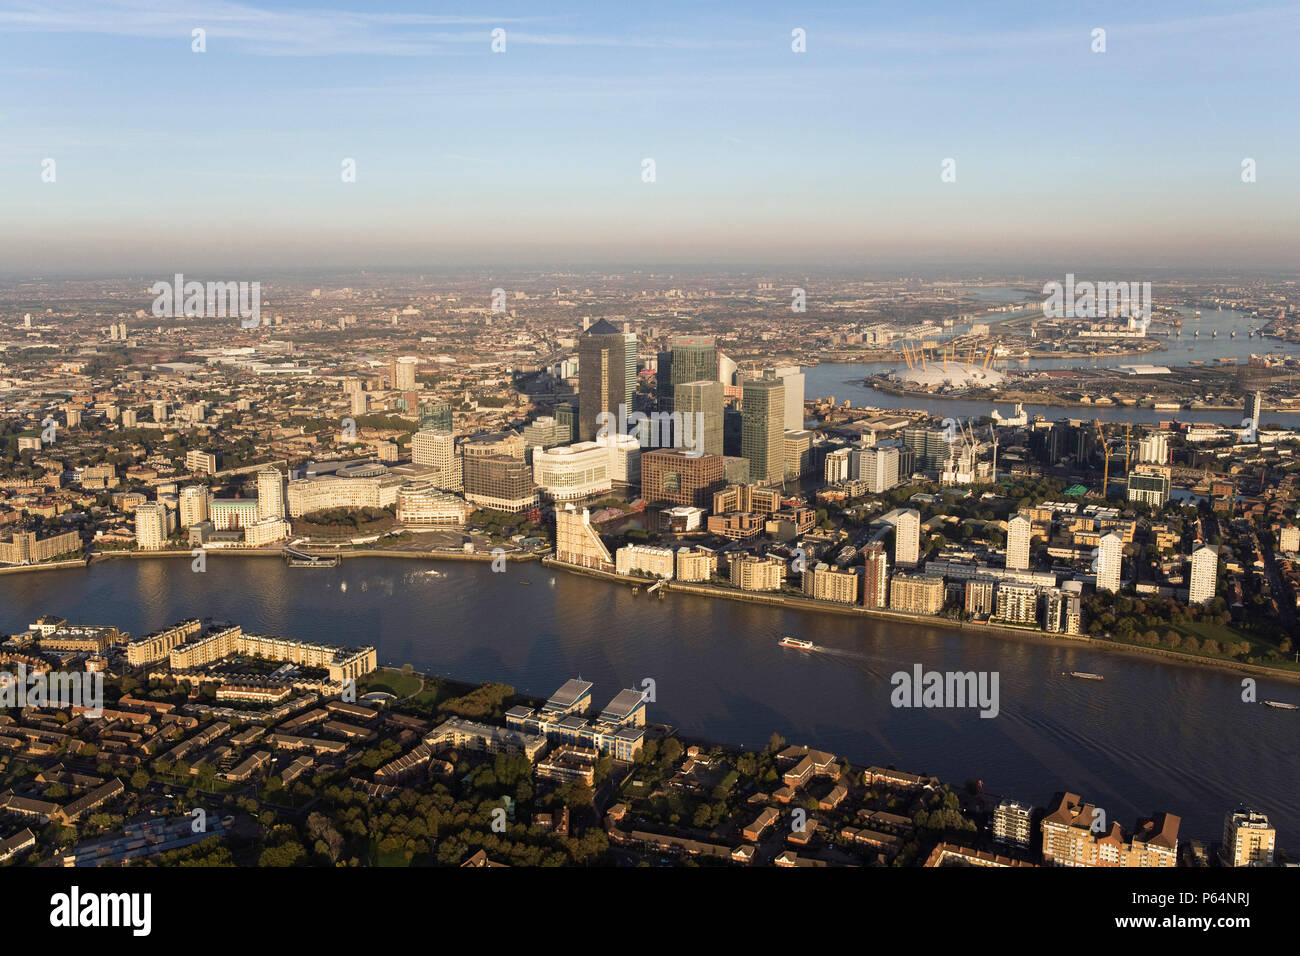 Aerial view of Canary Wharf, Docklands, London, UK. River Thames in foreground Stock Photo